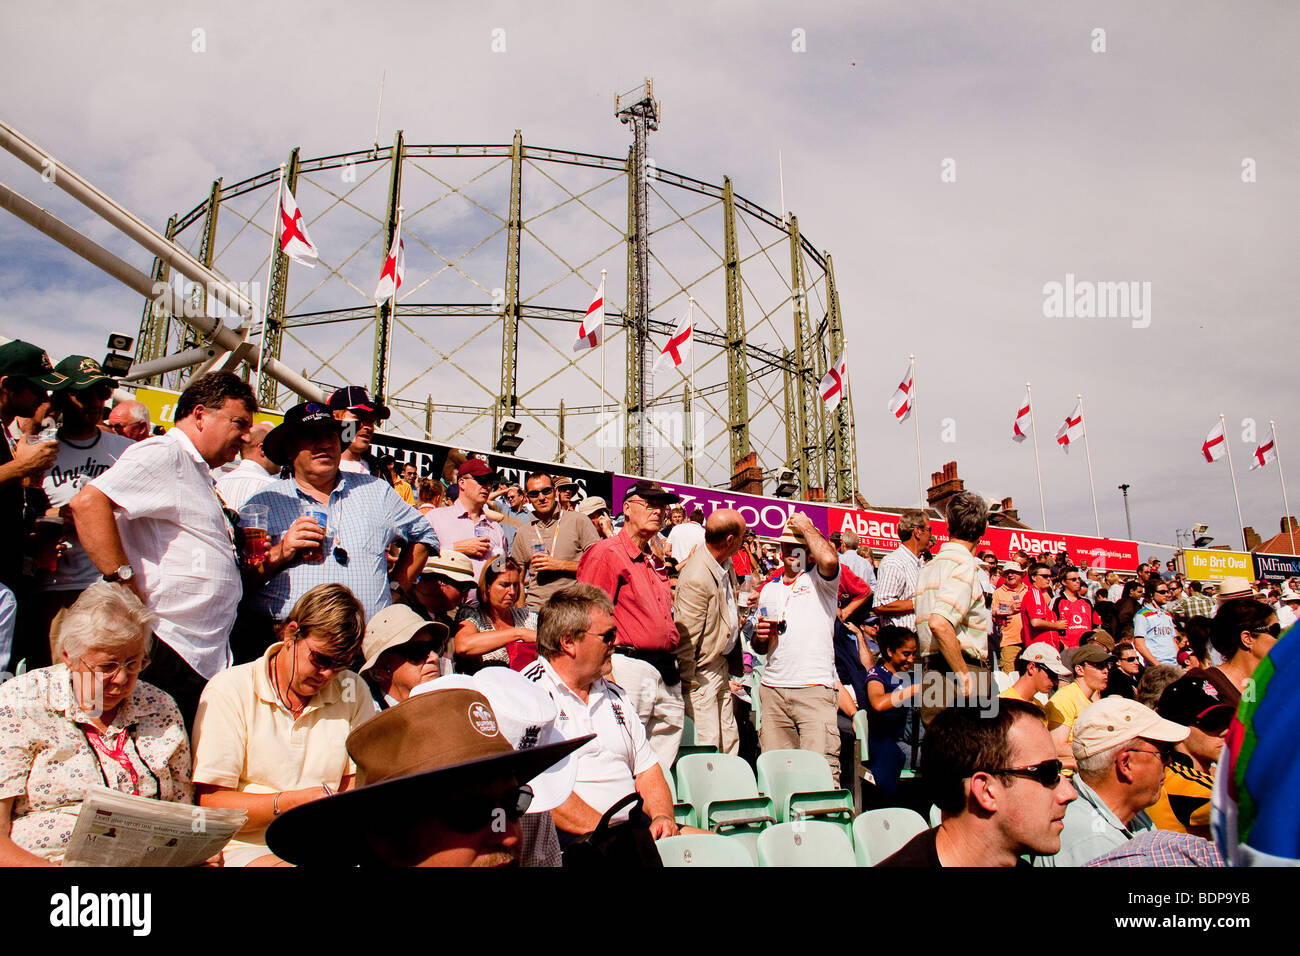 Crowd watching cricket game in front of a gas holder, London, UK The Oval - Stock Image